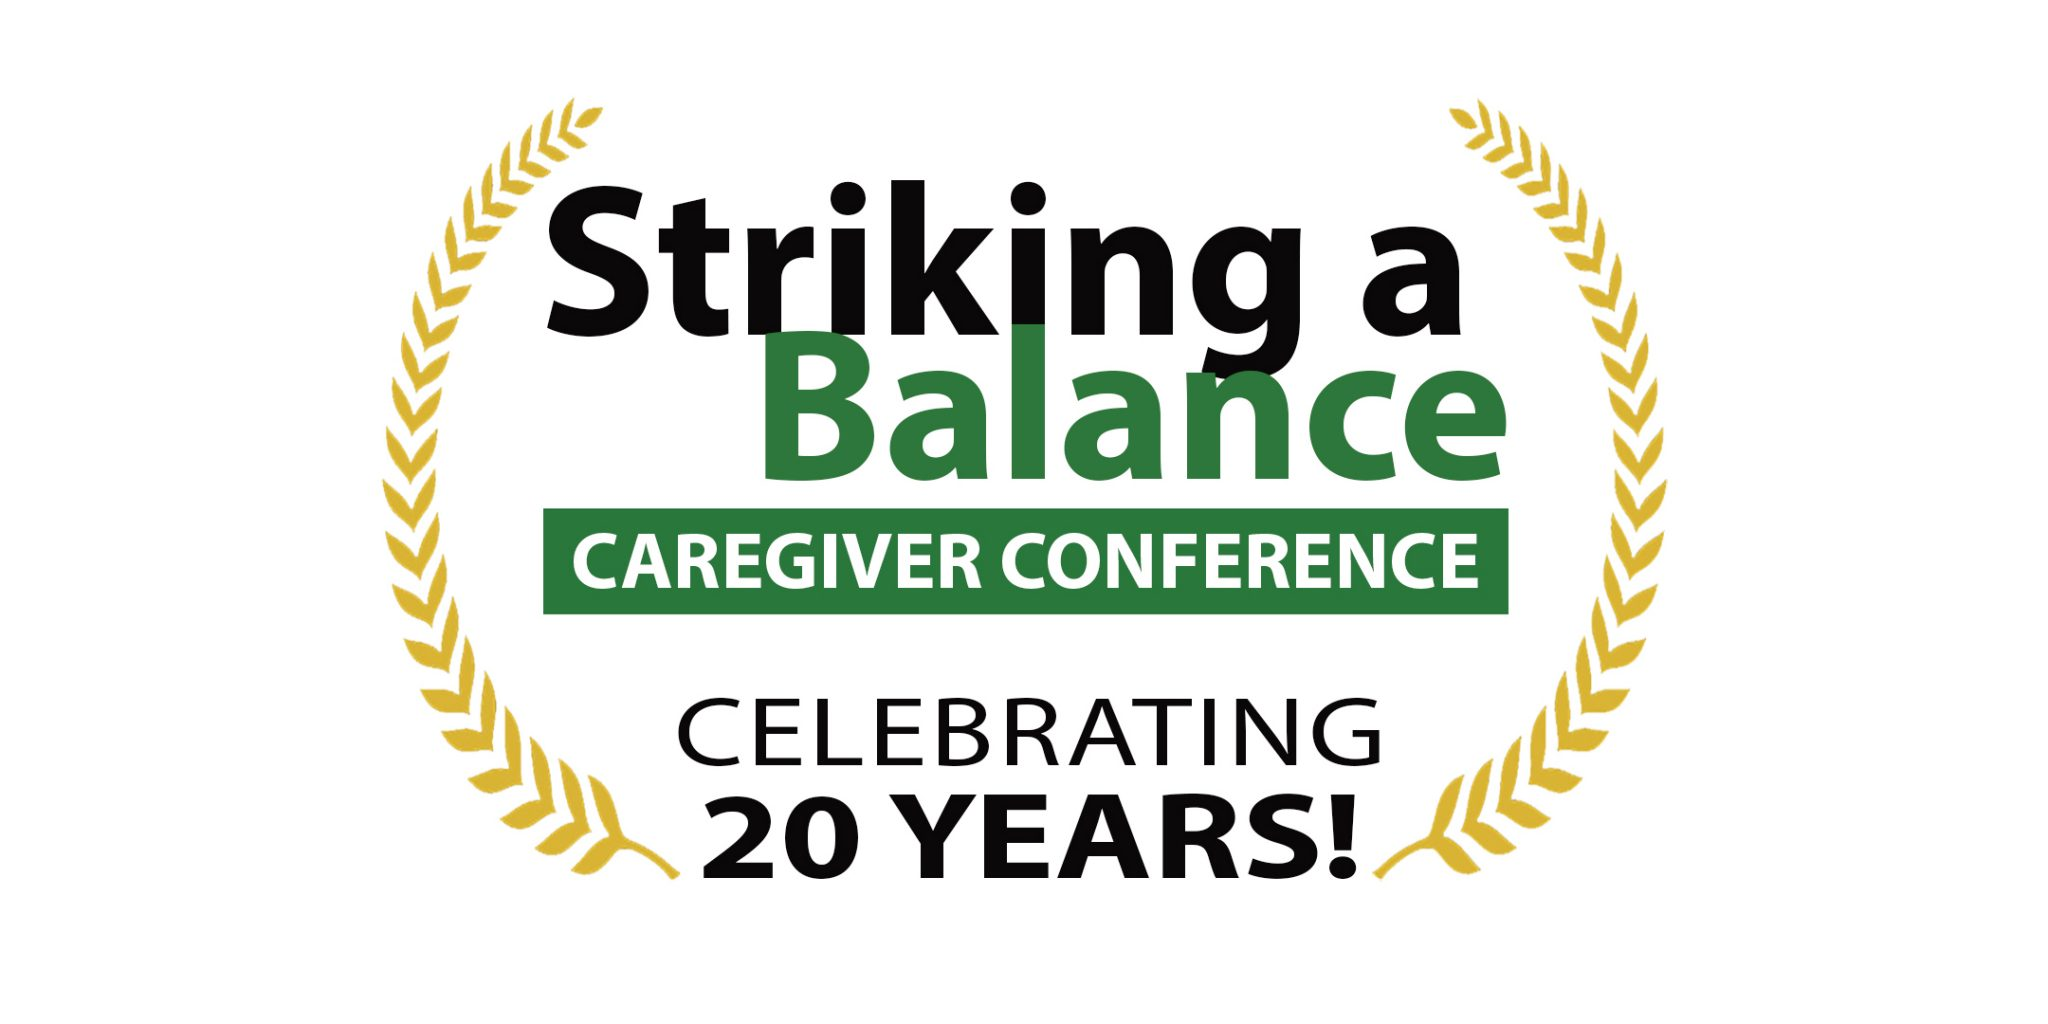 Striking A Balance: Family Caregiver Conference